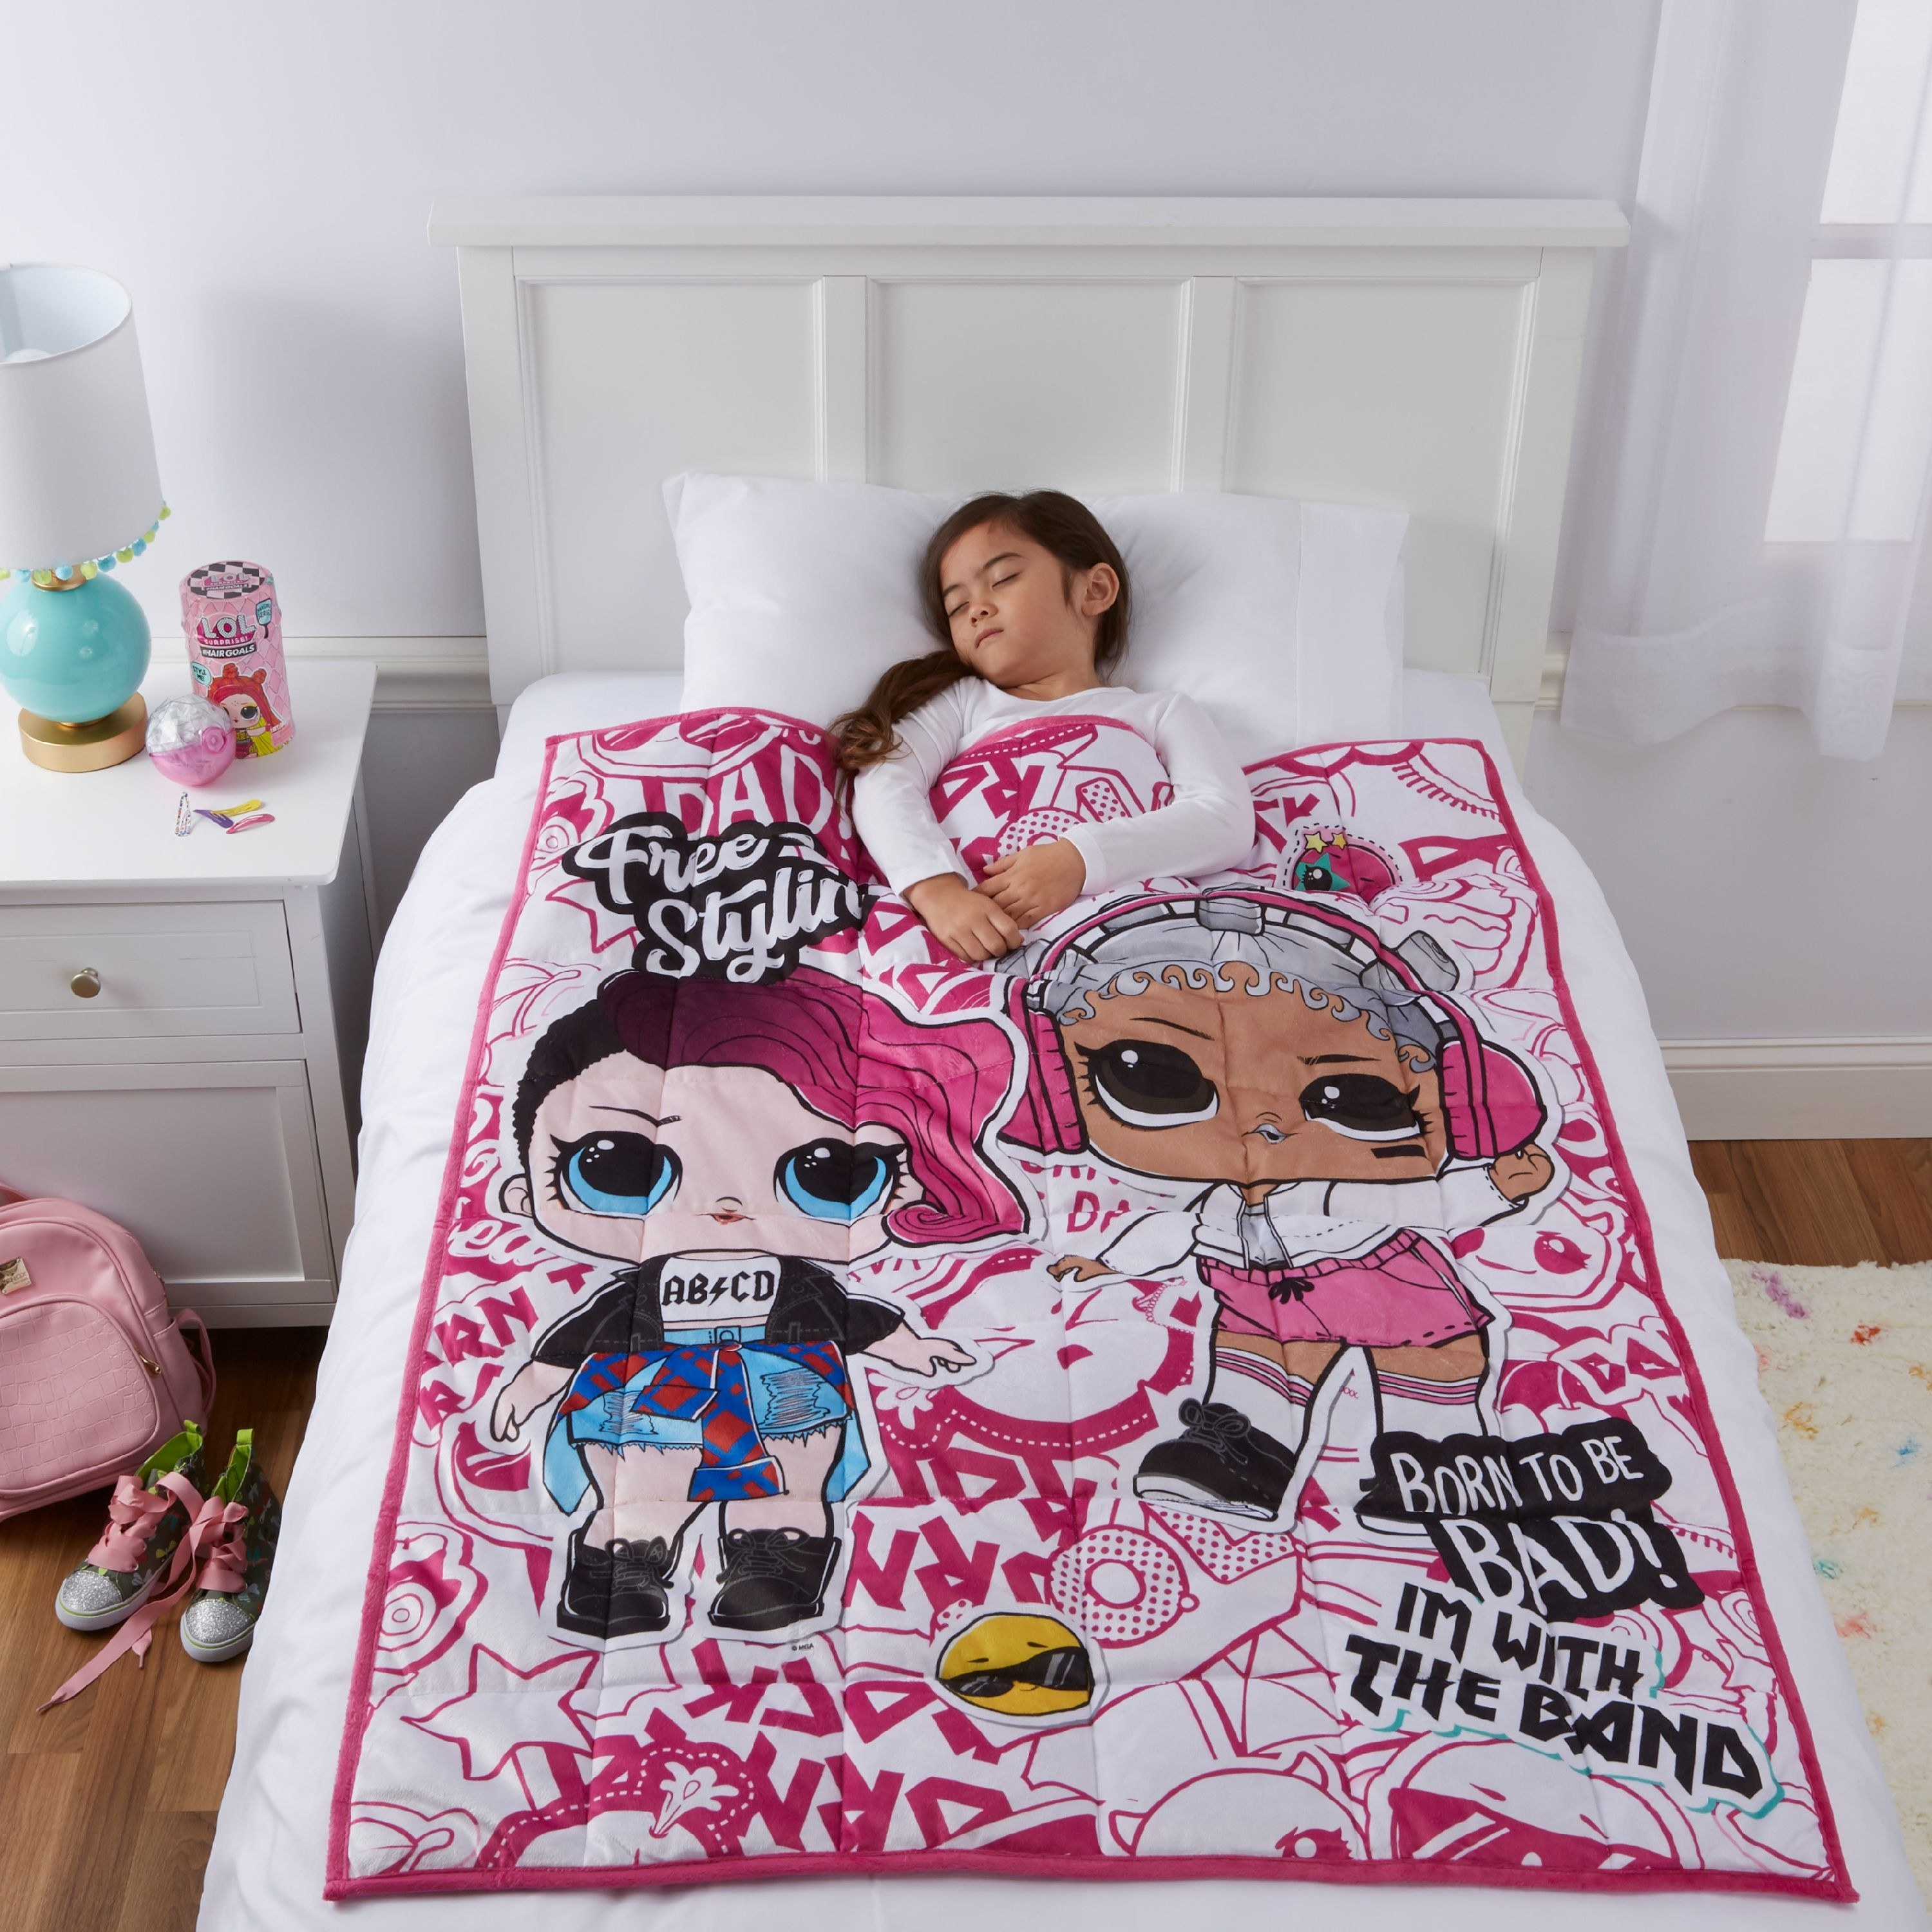 A pink blanket on a twin bed